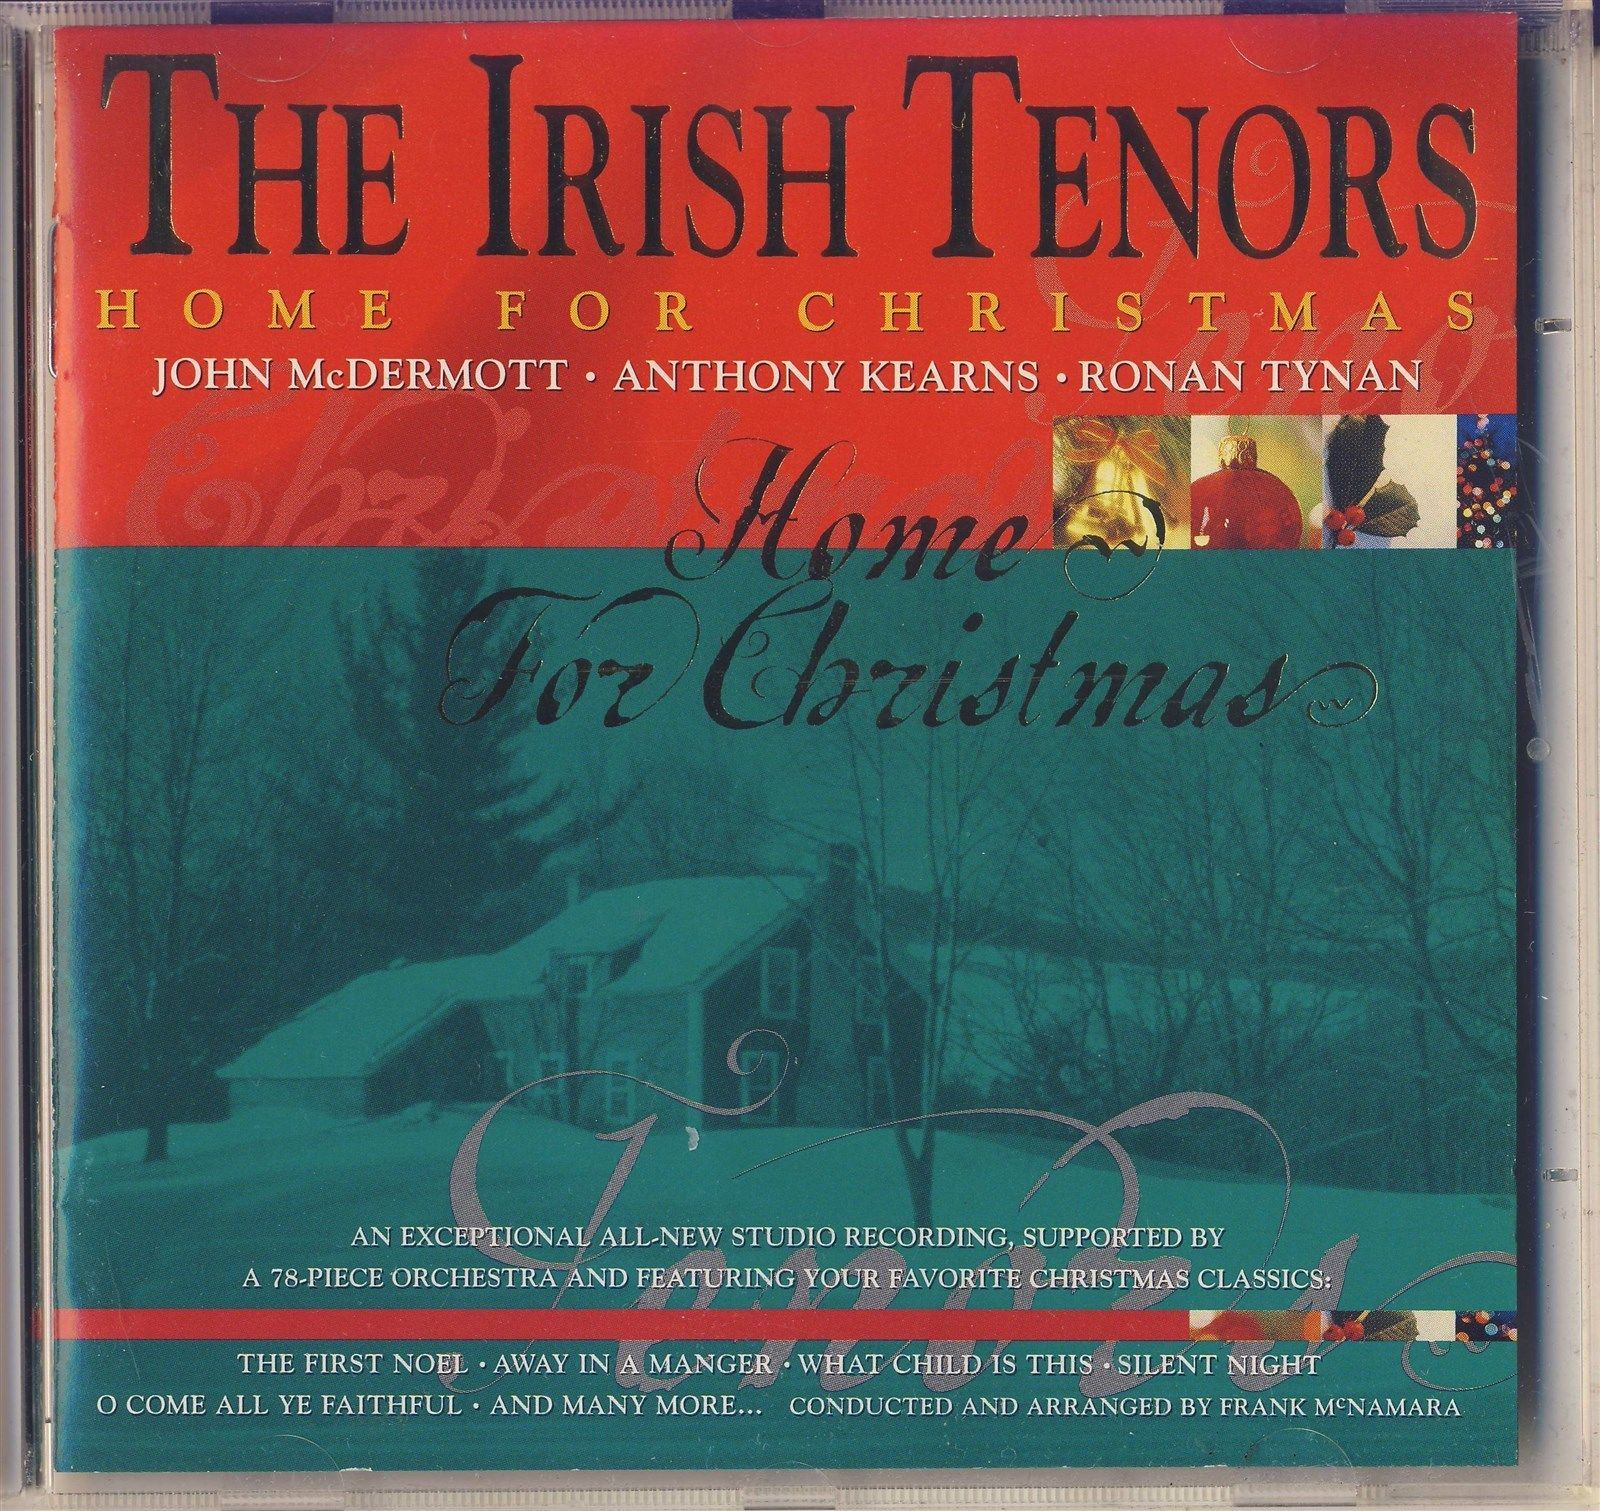 Home for christmas by the irish tenors1